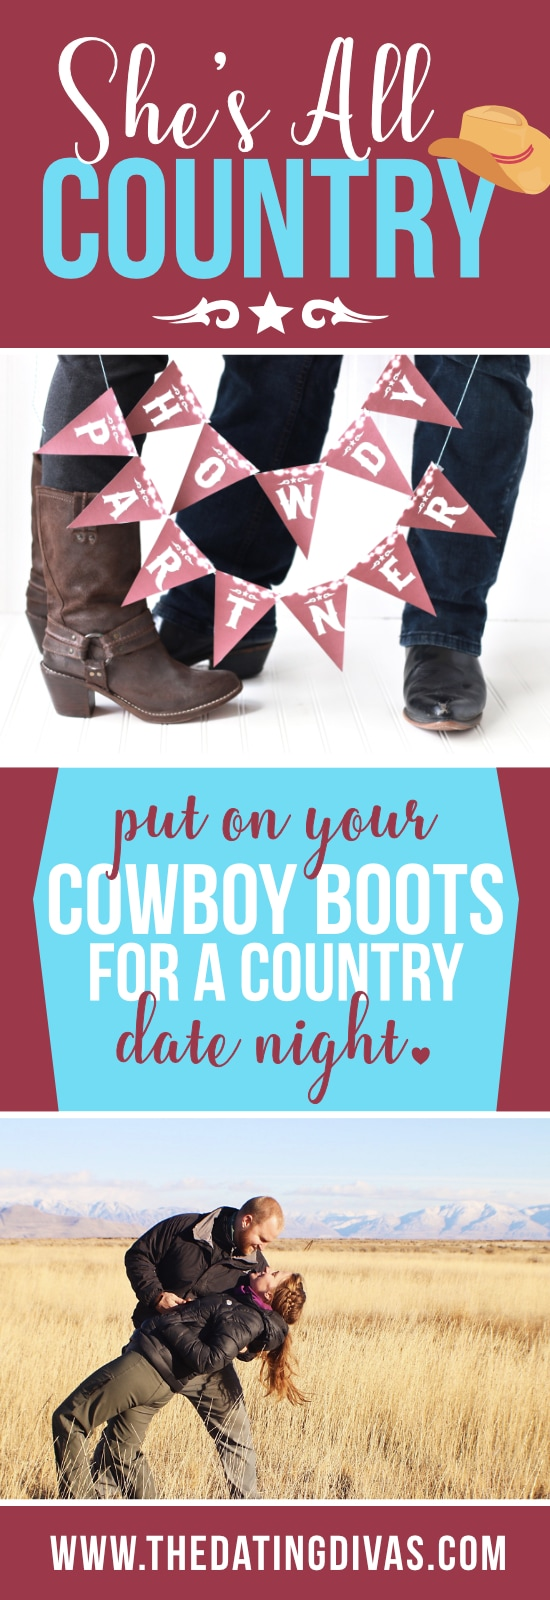 She's all country date night is such a fun idea!